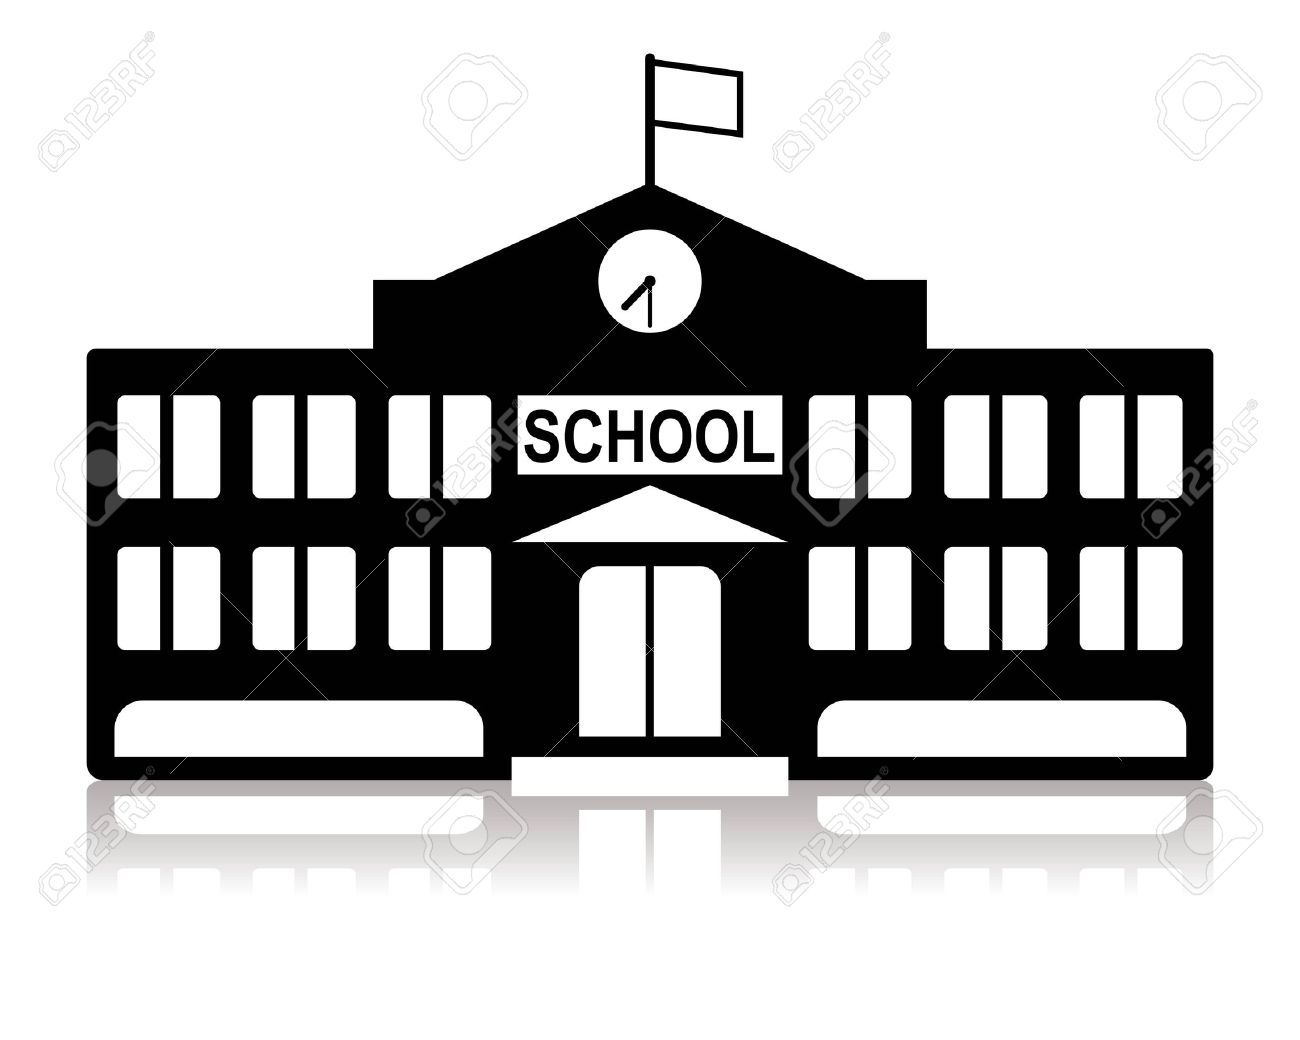 Building clipart black and white. Library google search play